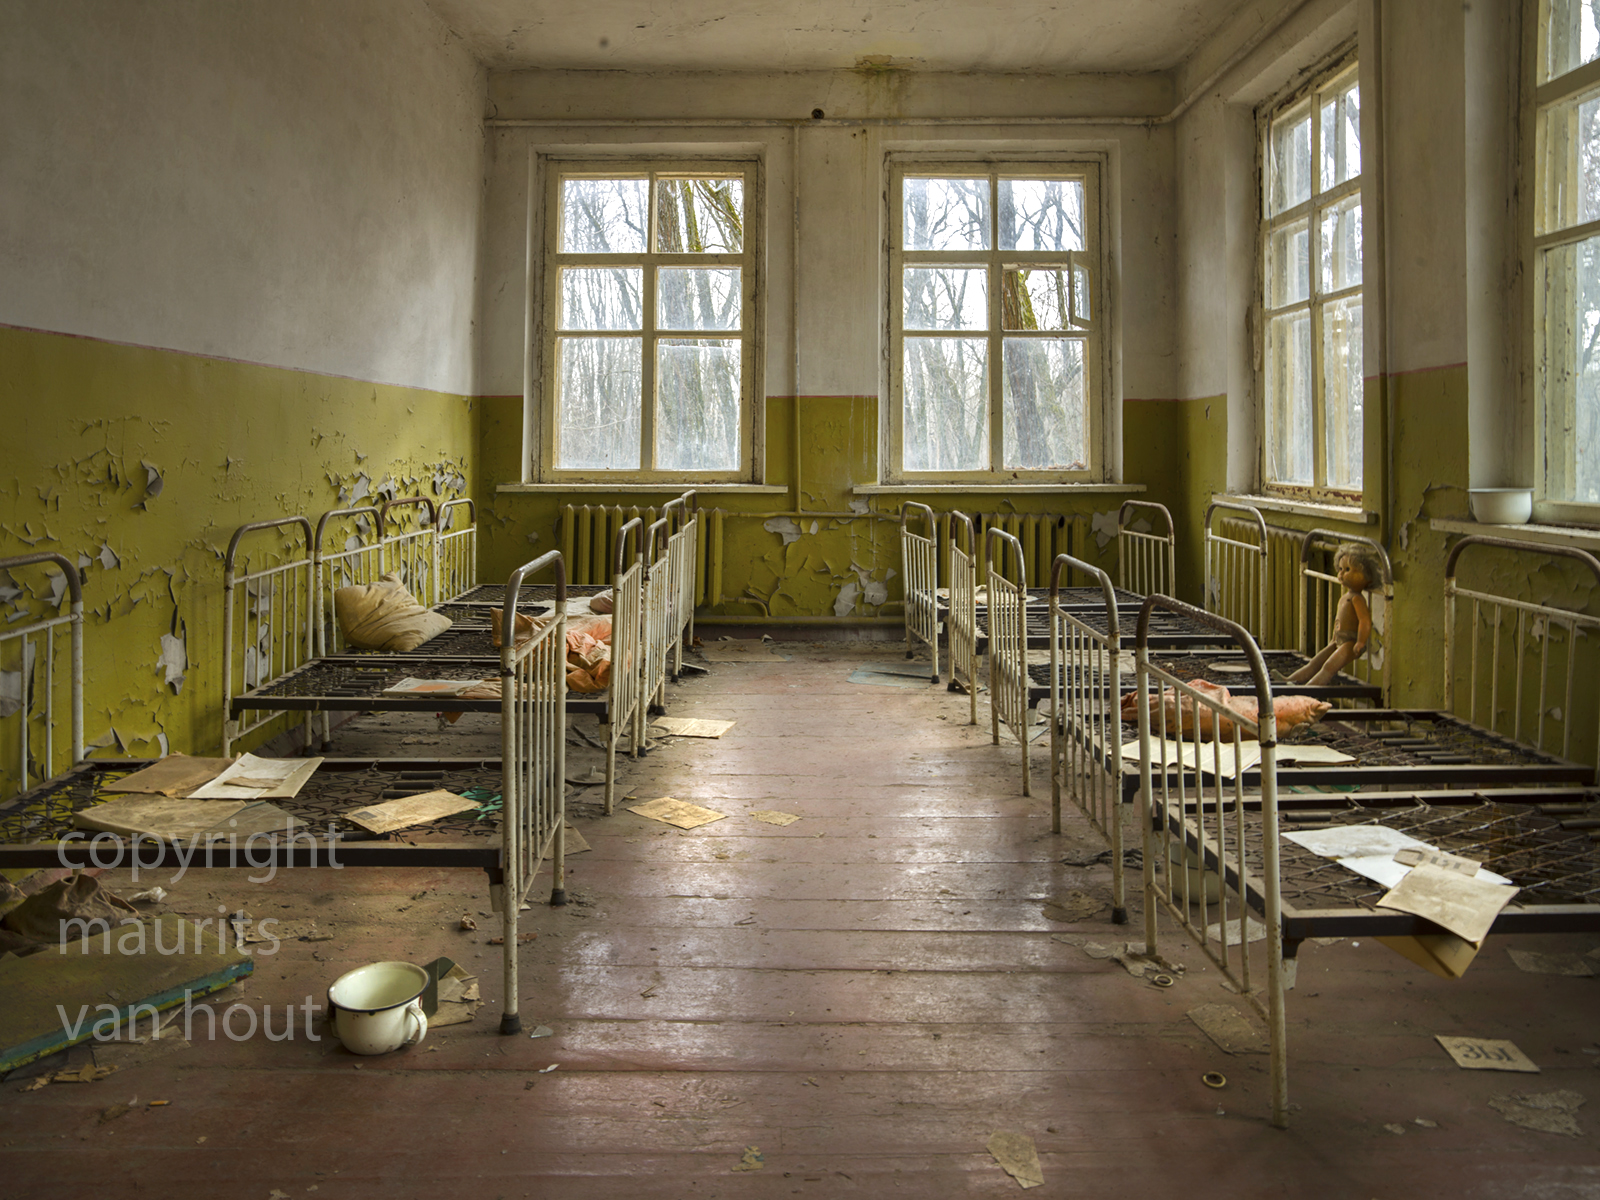 Ukrain, Tjernobyl2. Photo: in the are called Tjernobyl 2 where the military facility the Doega is, they had many facilities like a childcare centre.